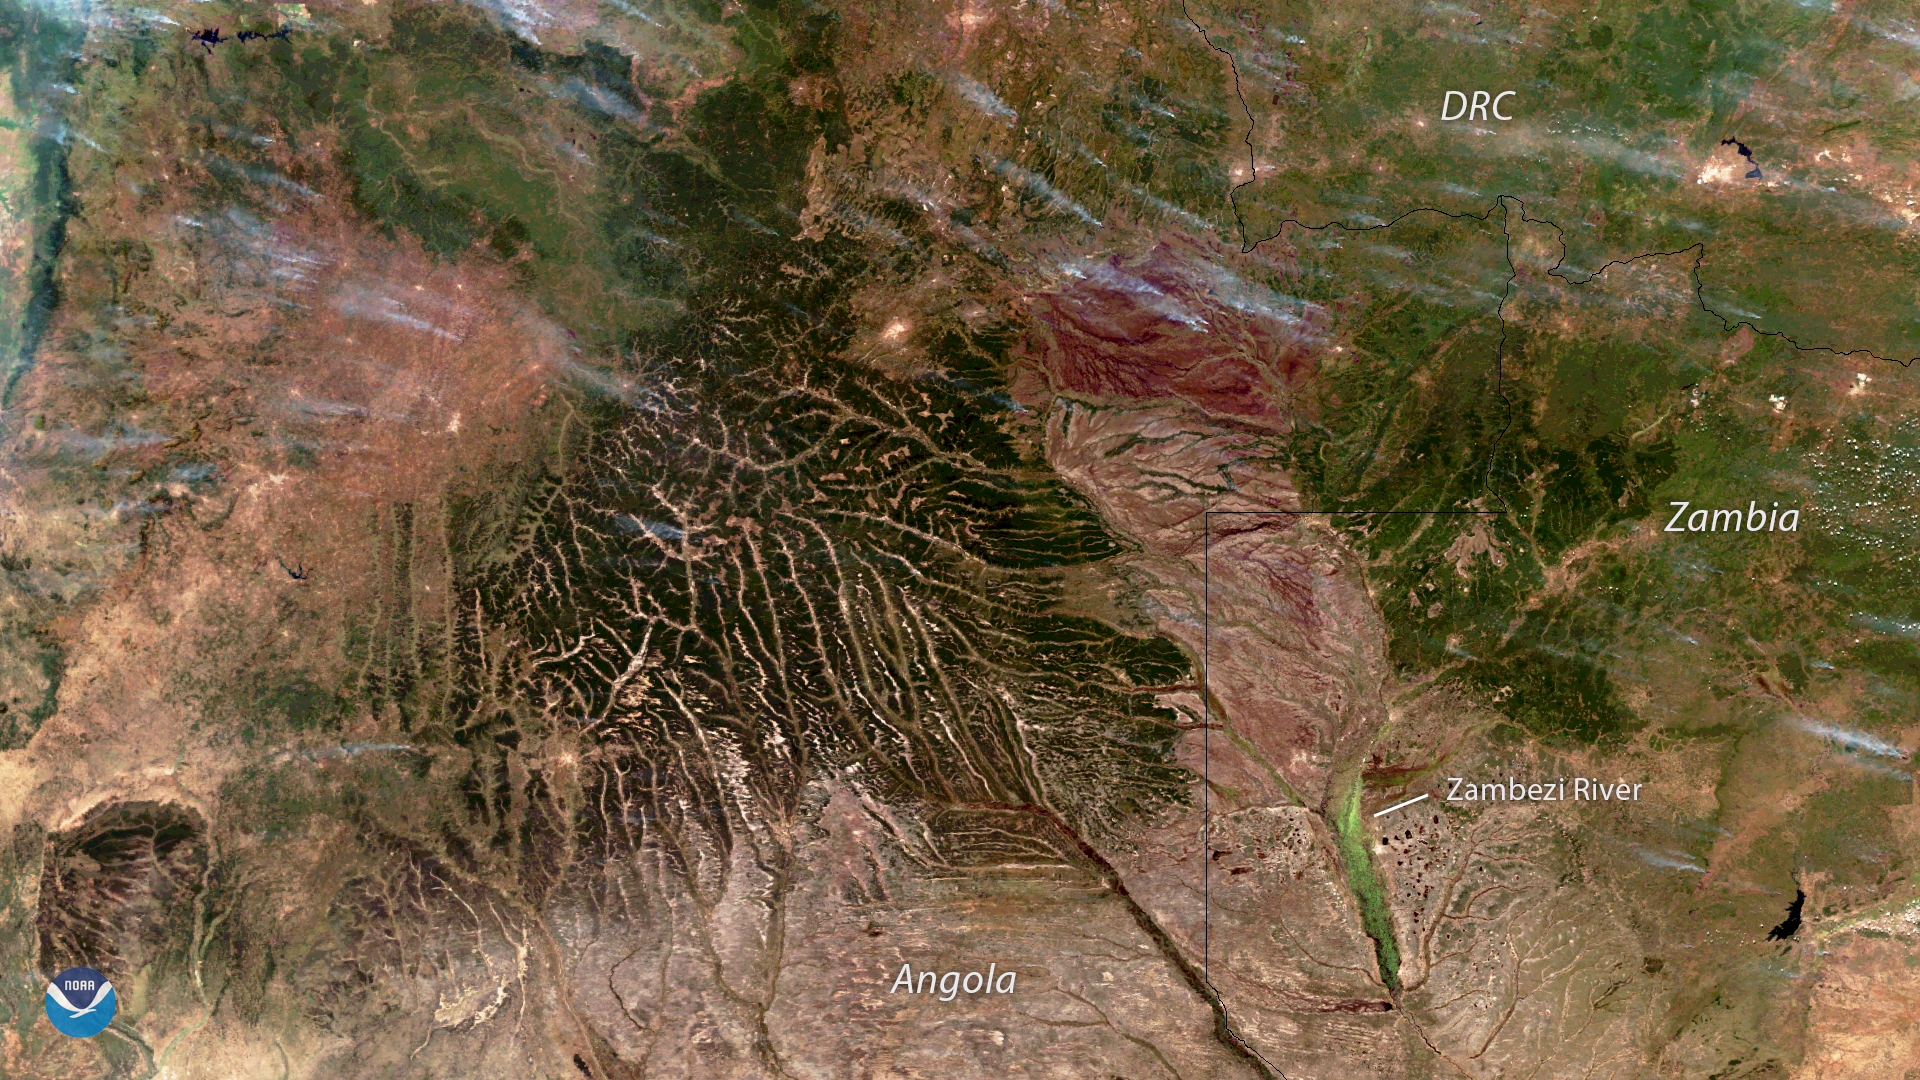 Fires Dot the Landscape in Sub-Saharan Africa